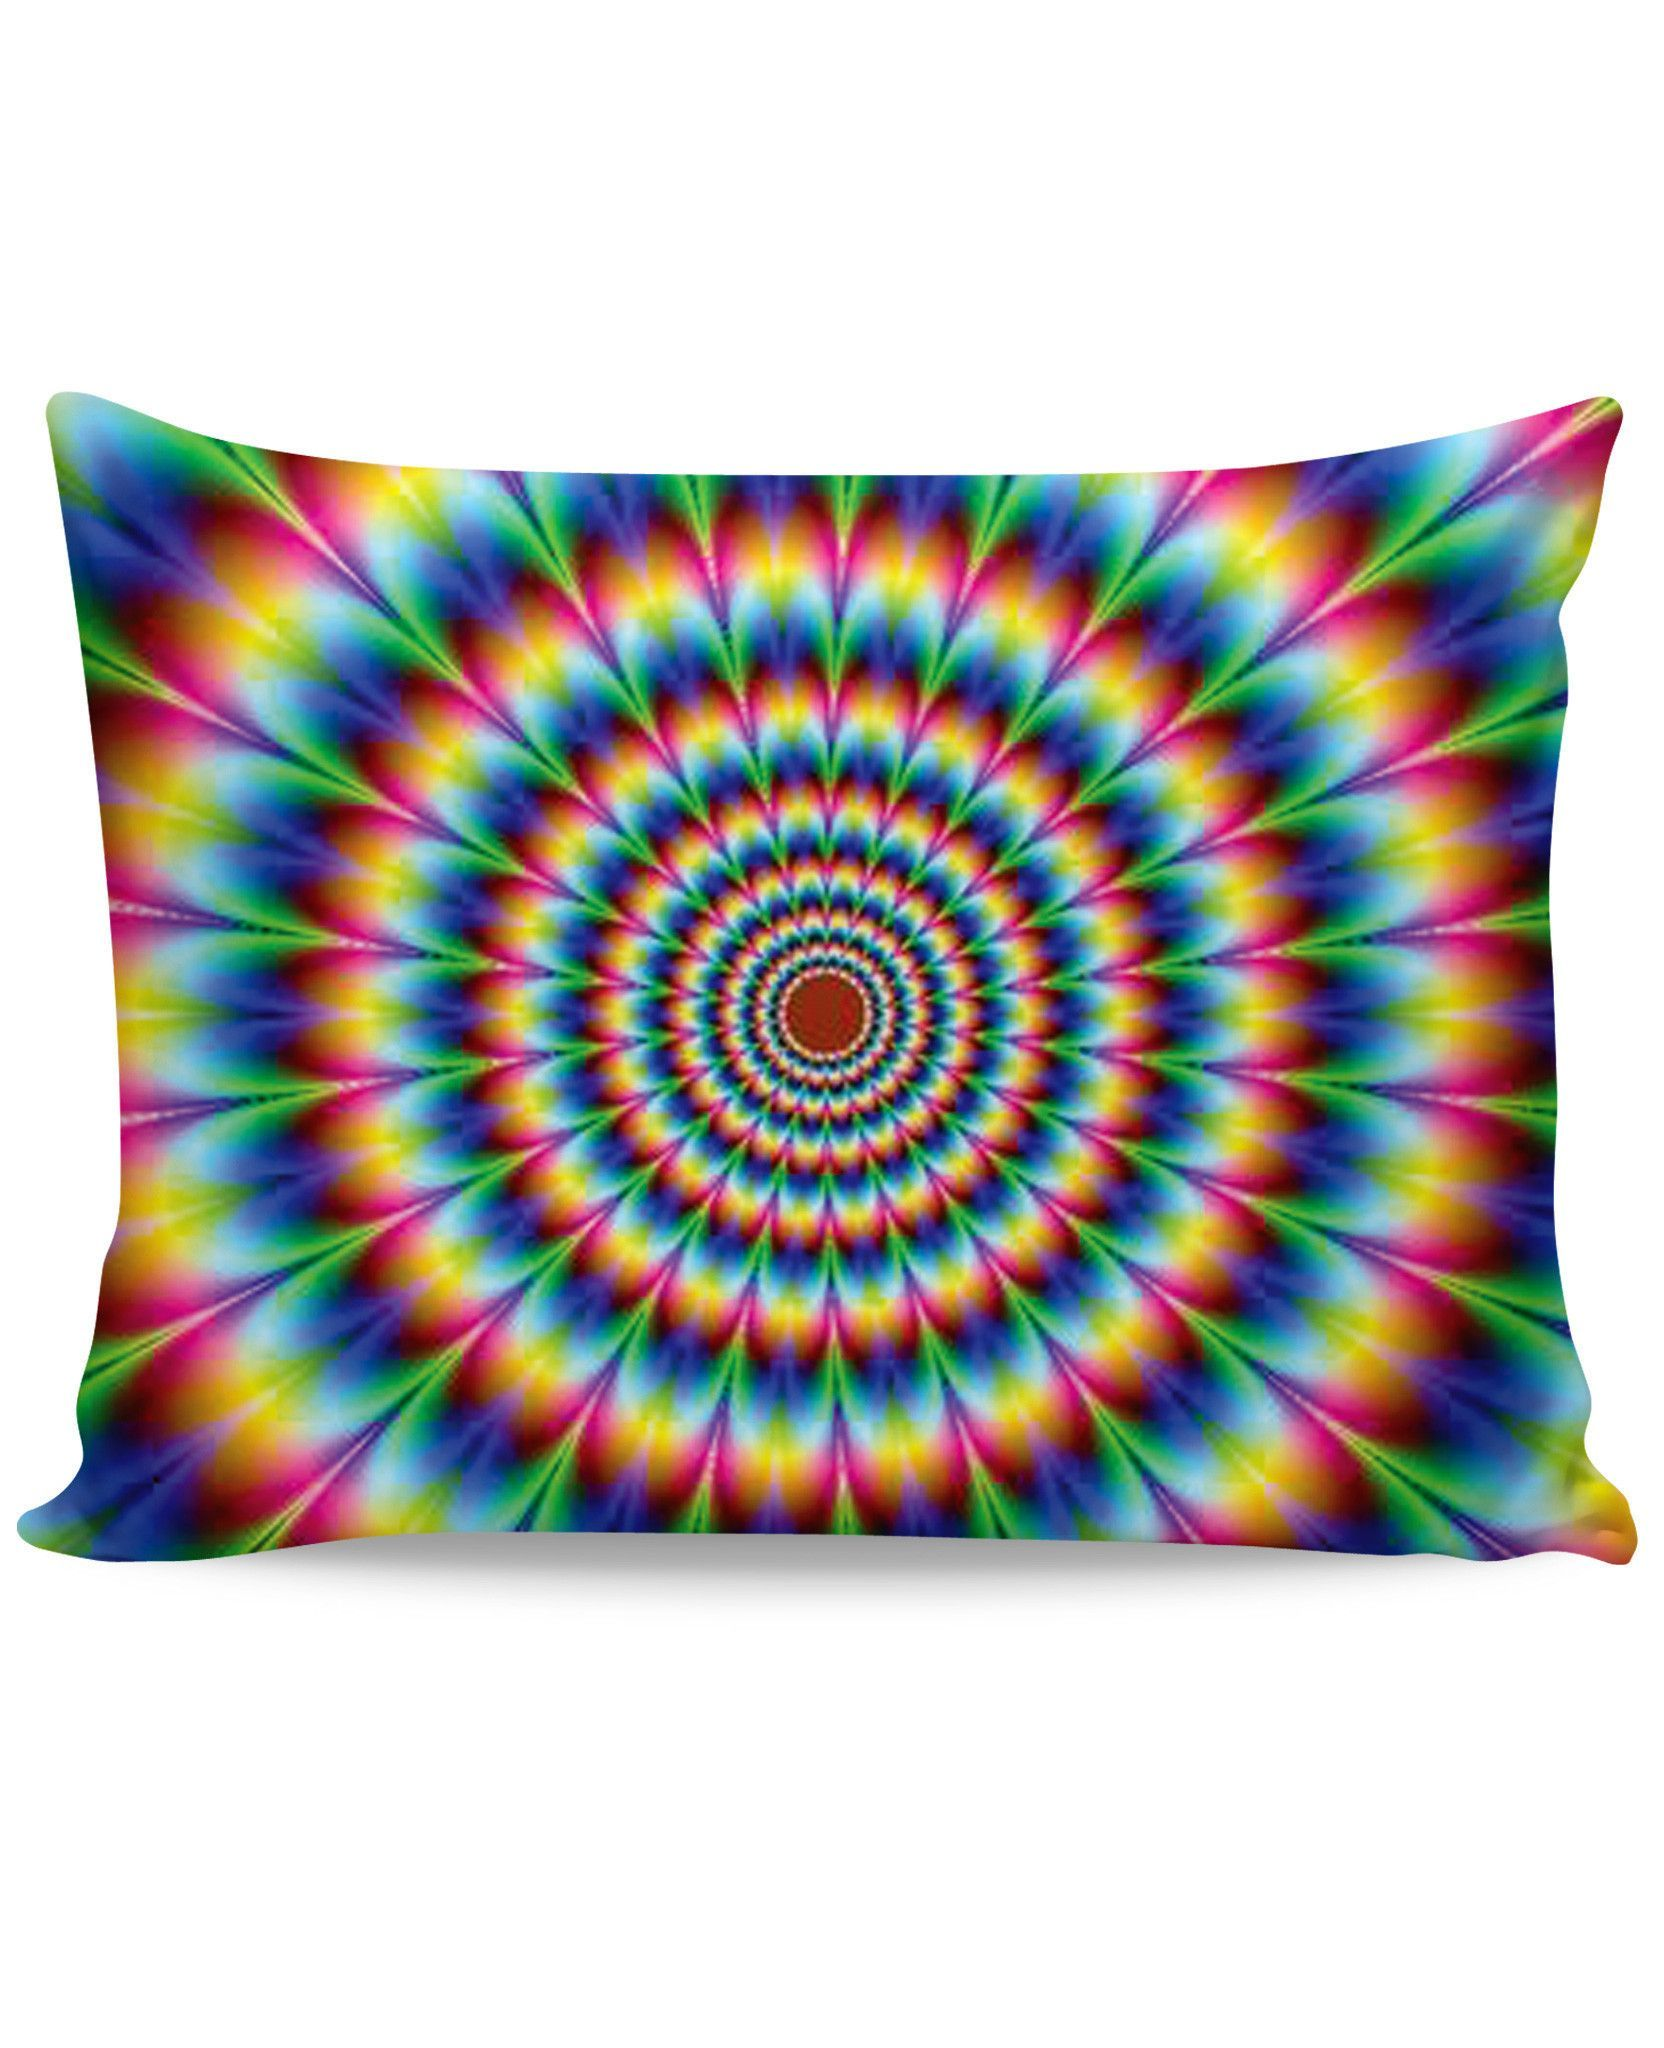 Into the rainbow pillow case products